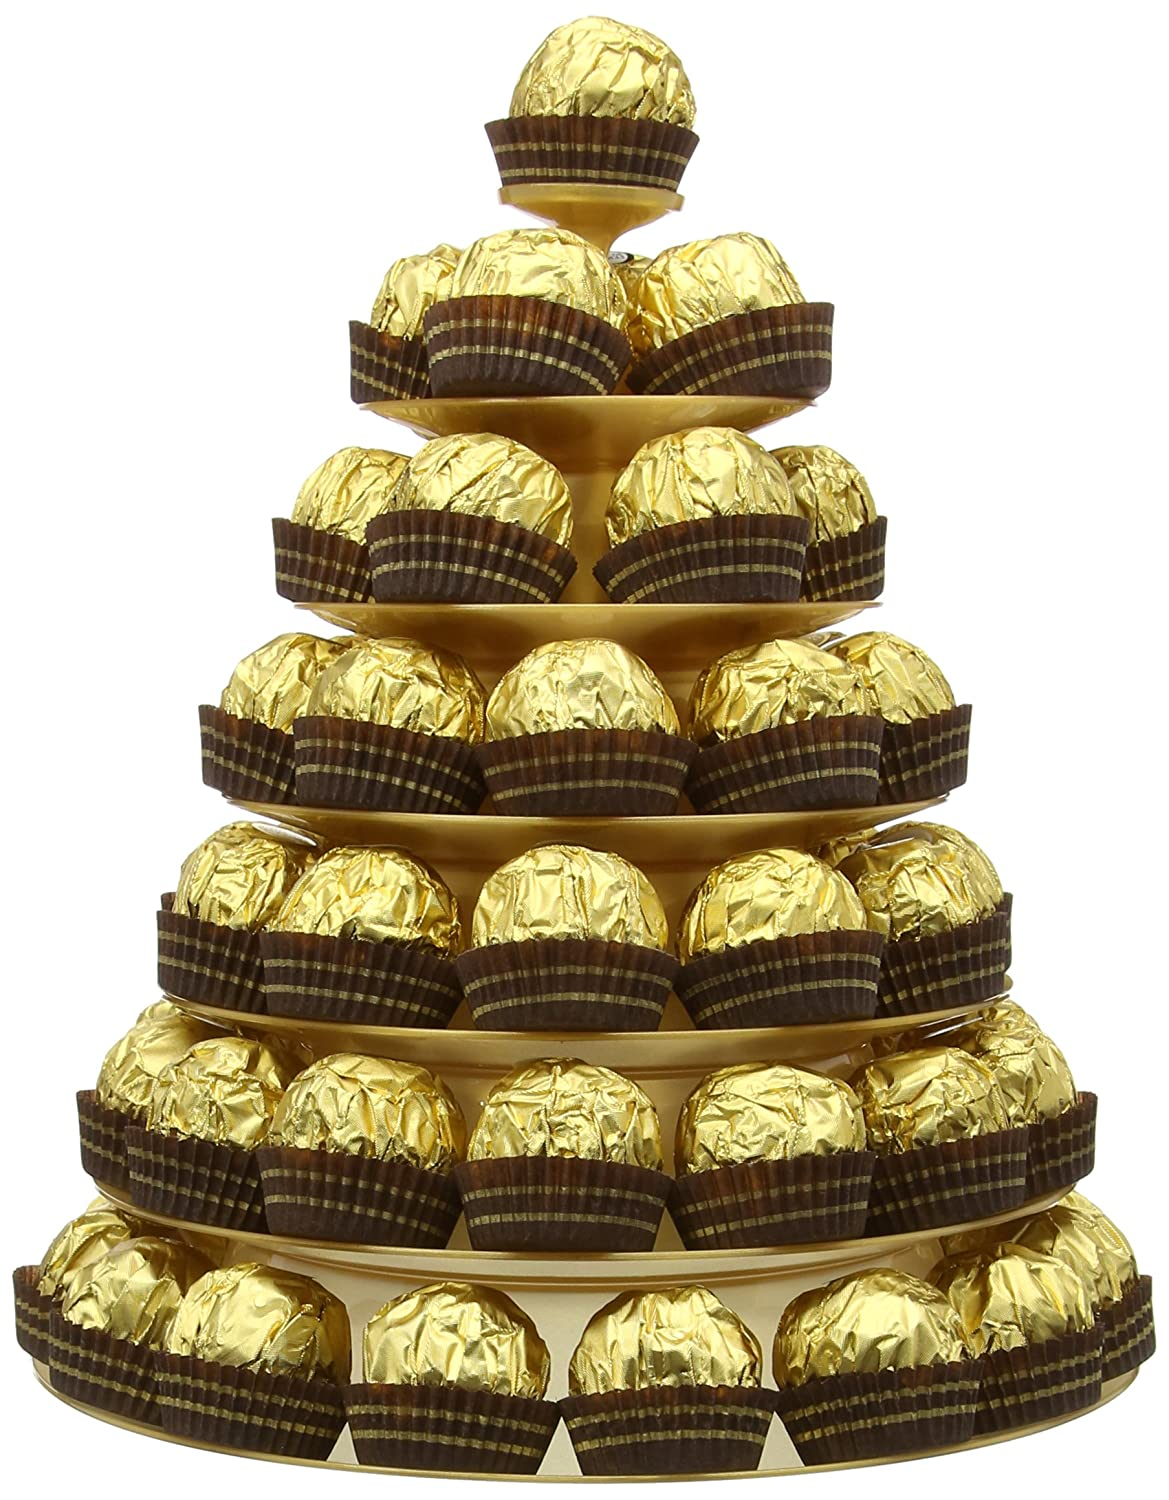 5 Type Of Ferrero Rocher Box This Cone Is Filled With T24 Coklat 24pcs Amazoncom Tree 12 Count Chocolate Assortments And Samplers Grocery Gourmet Food